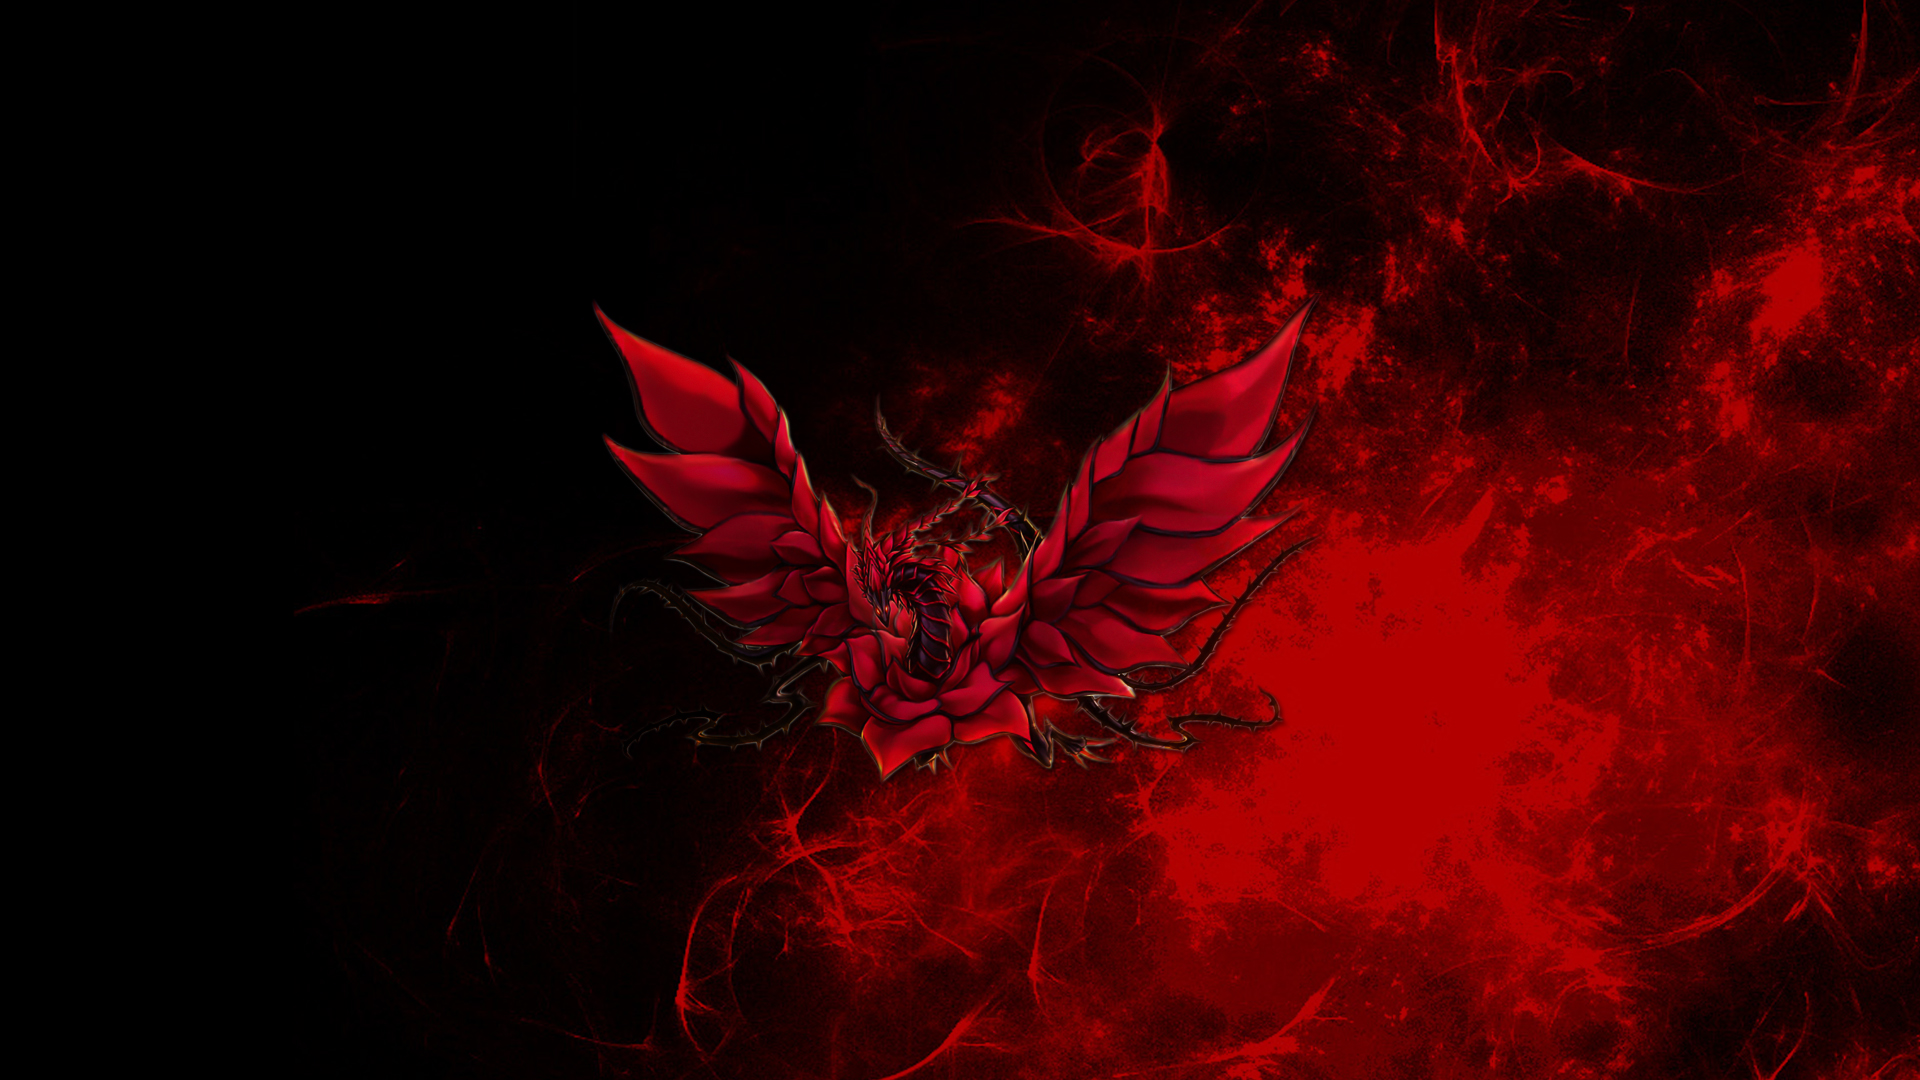 red and black dragon wallpaper   wallpapersafari